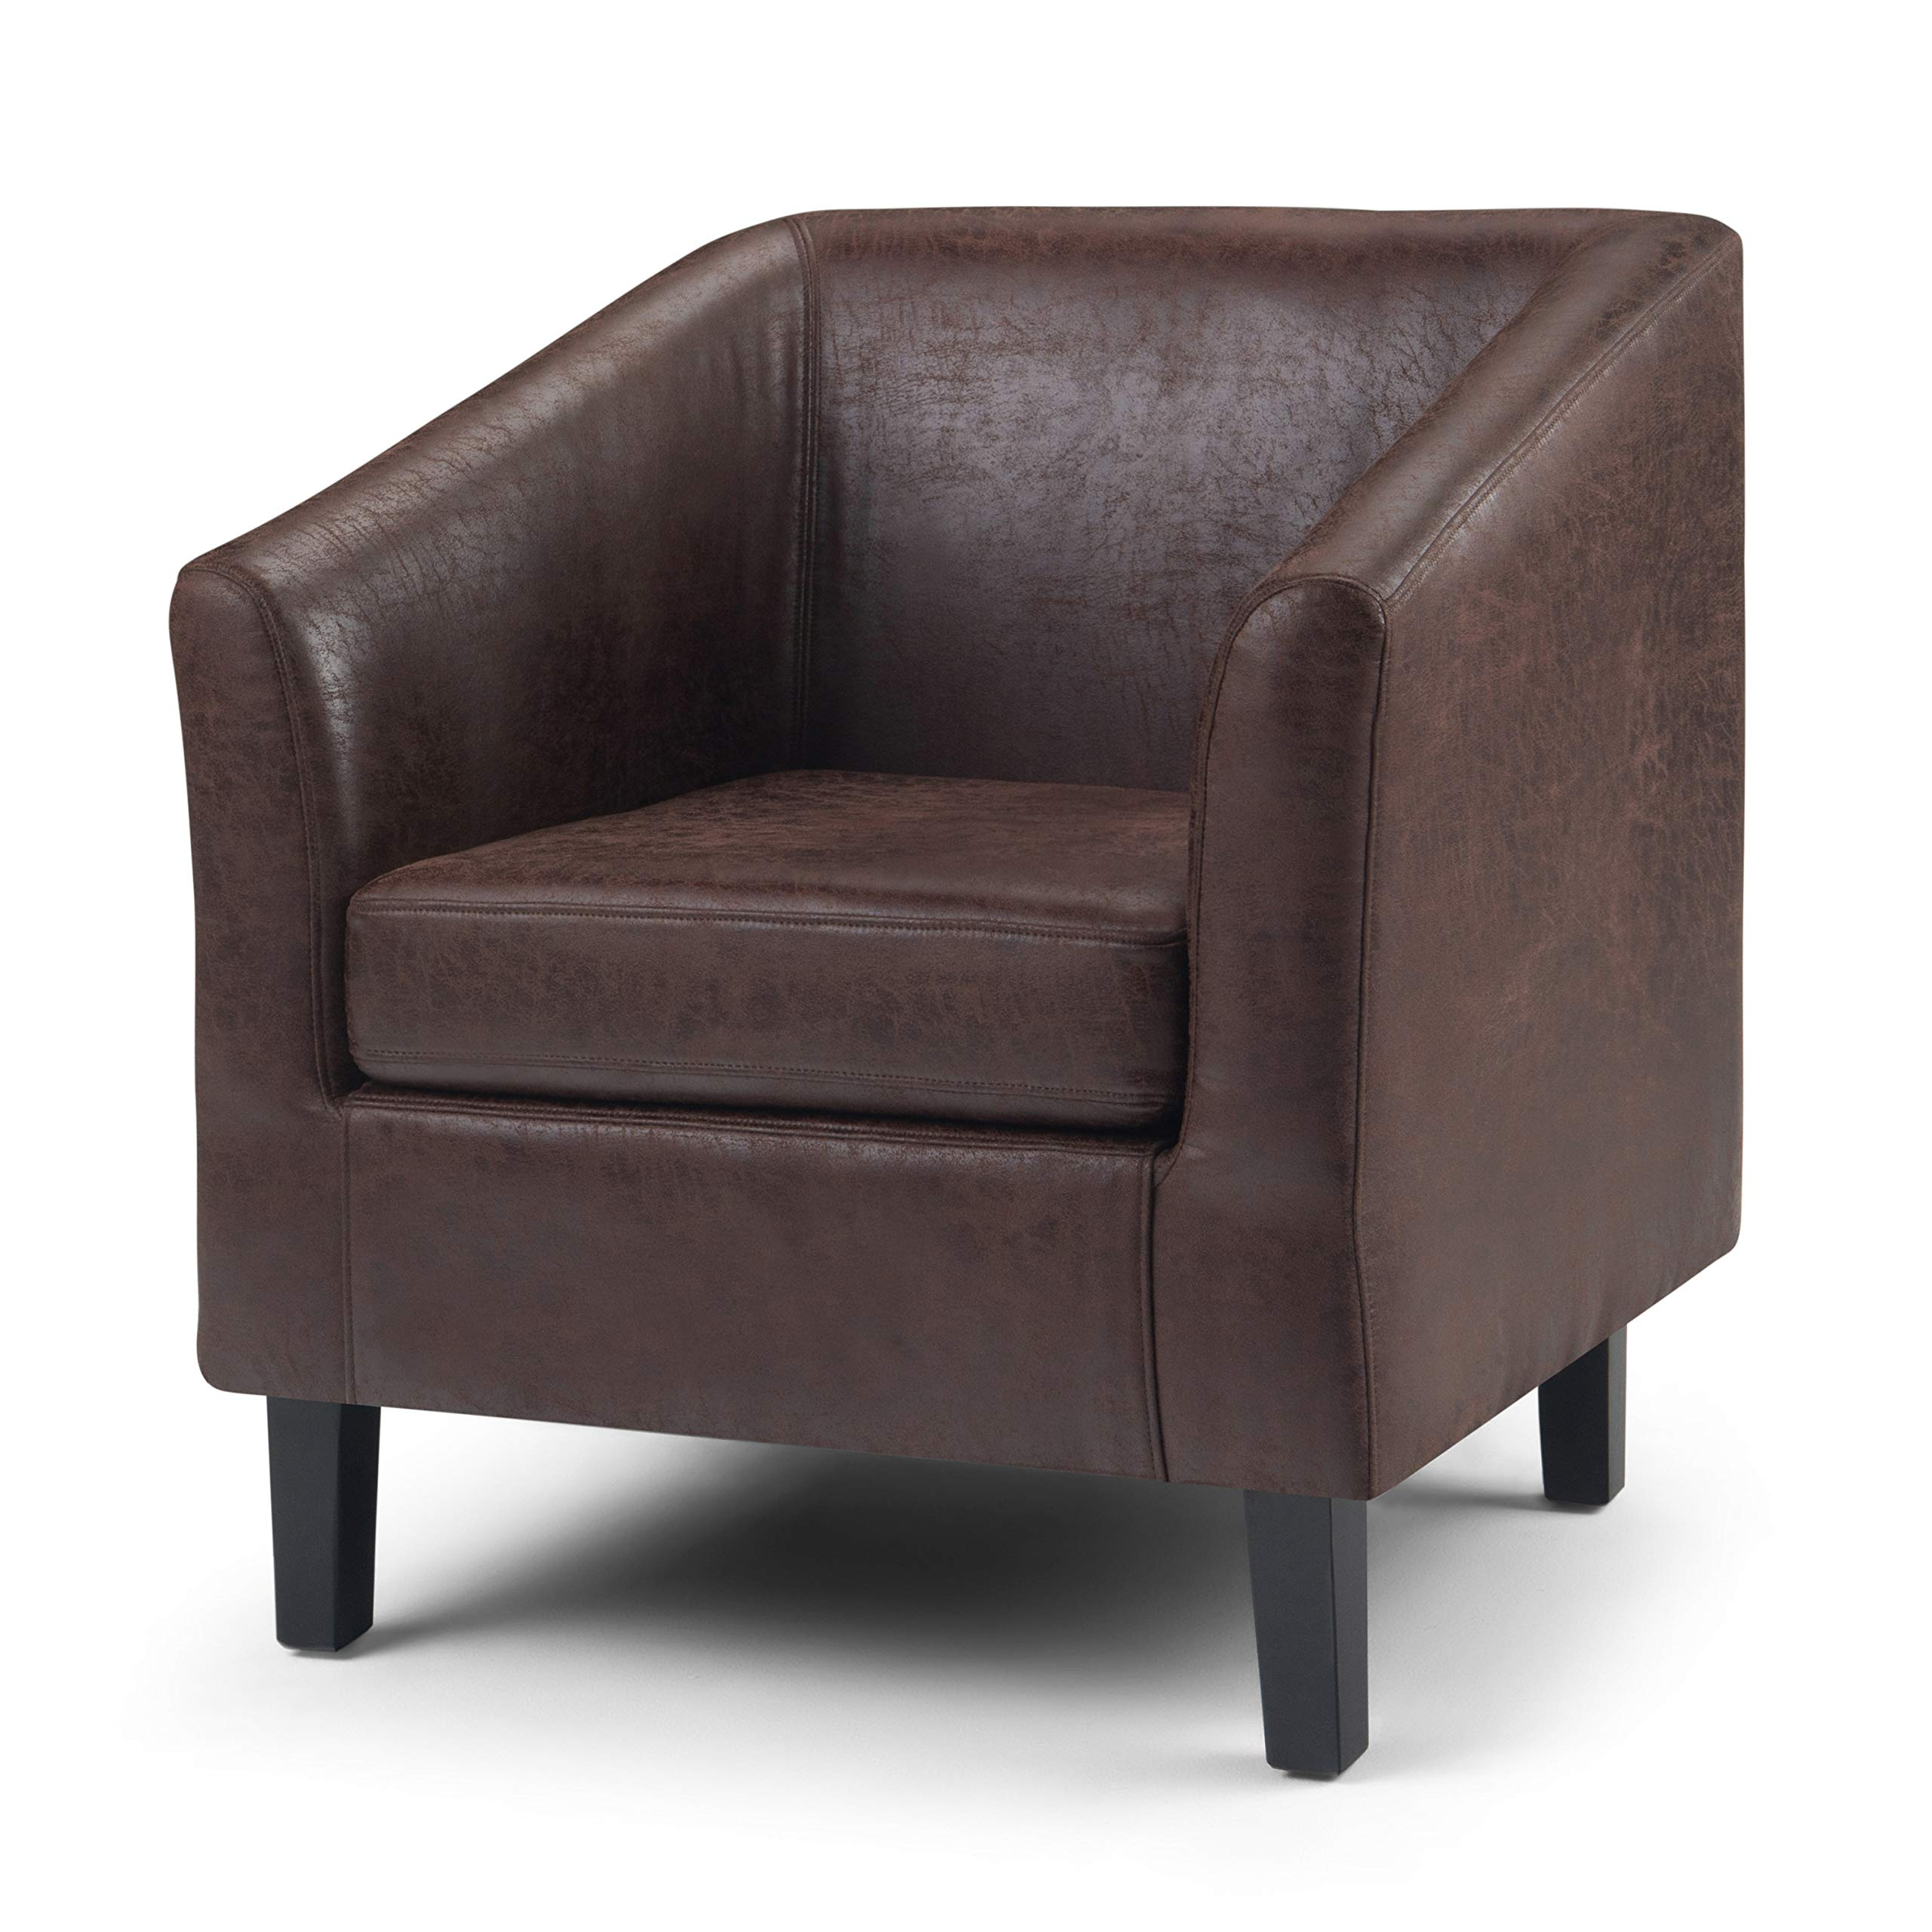 Simpli Home Merlow 30 inch Wide Mid Century Modern Tub Chair in Distressed Brown Faux Air Leather